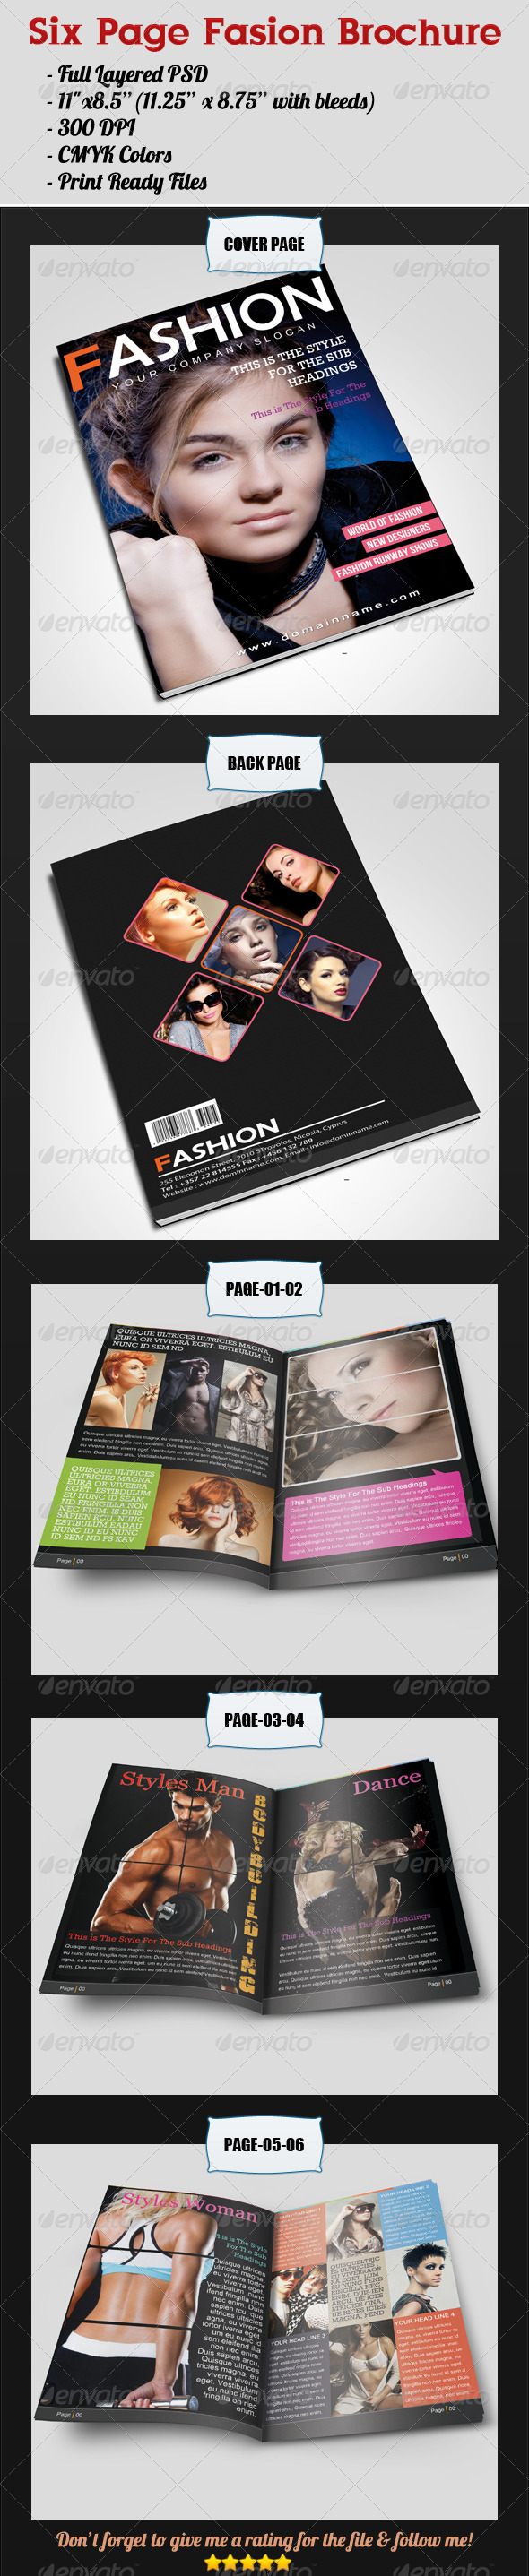 GraphicRiver Six Page Fashion Brochure 3911059